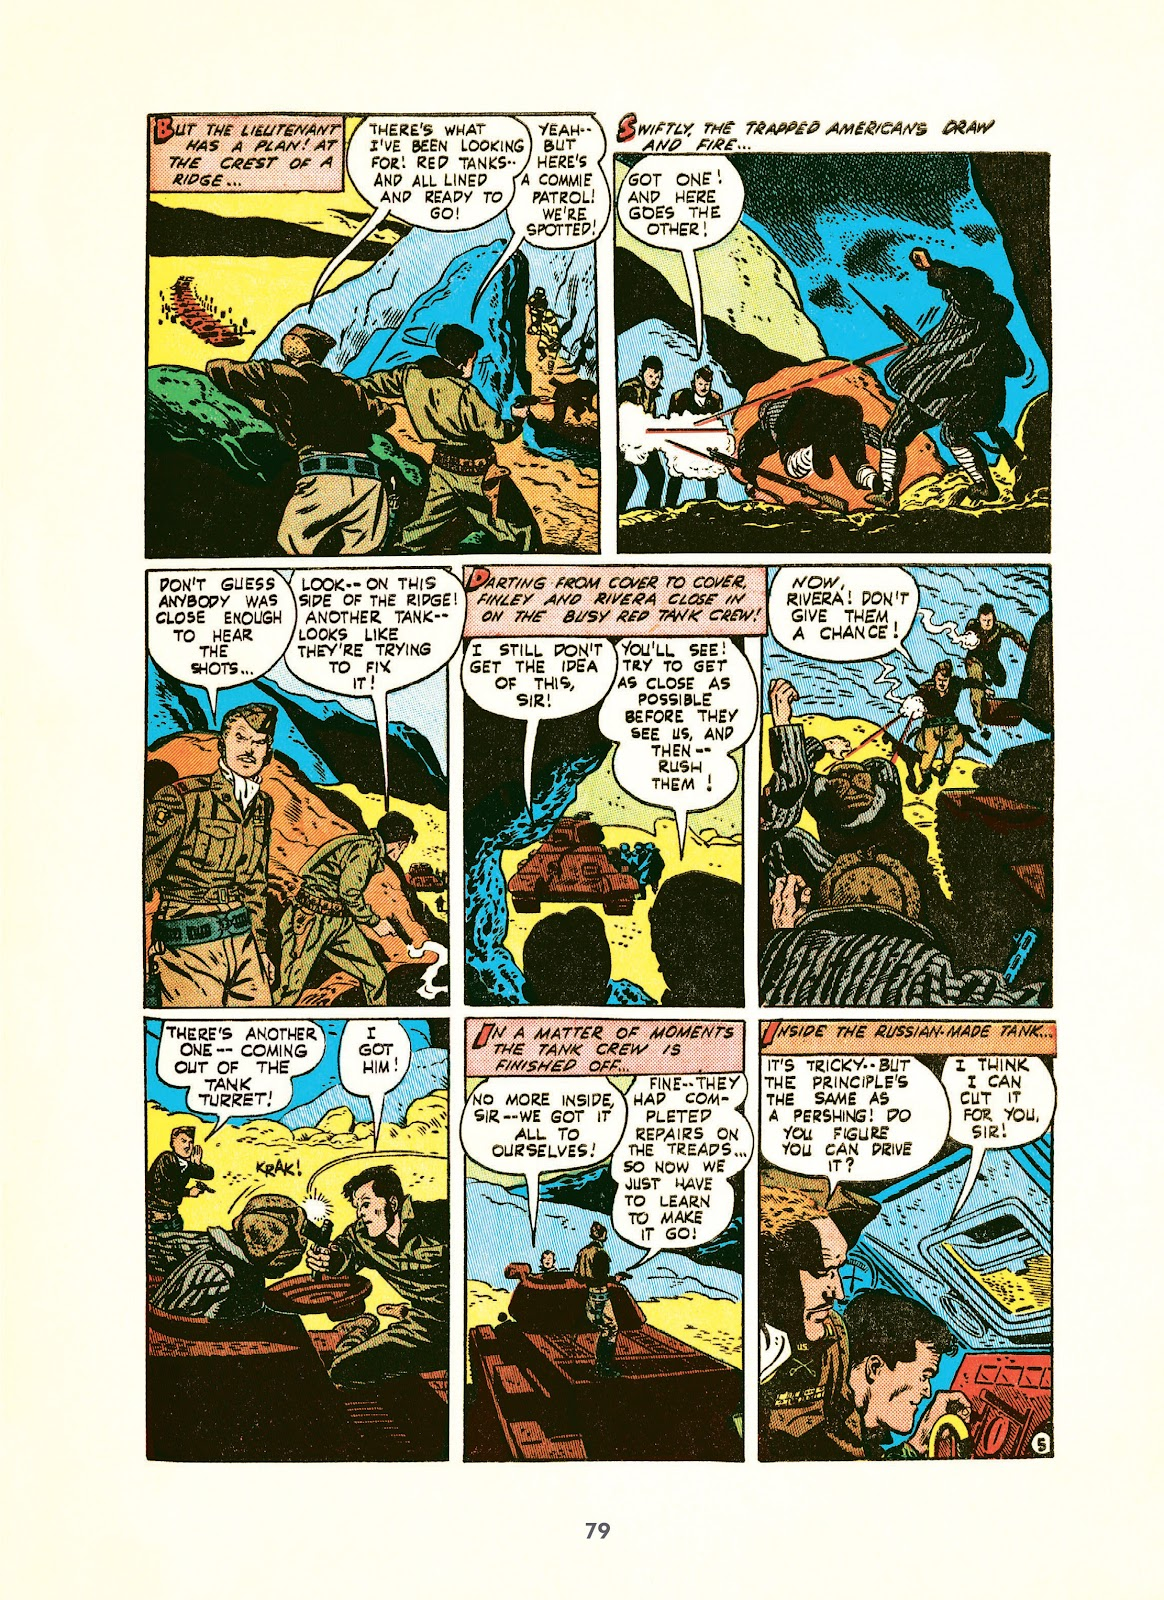 Read online Setting the Standard: Comics by Alex Toth 1952-1954 comic -  Issue # TPB (Part 1) - 78